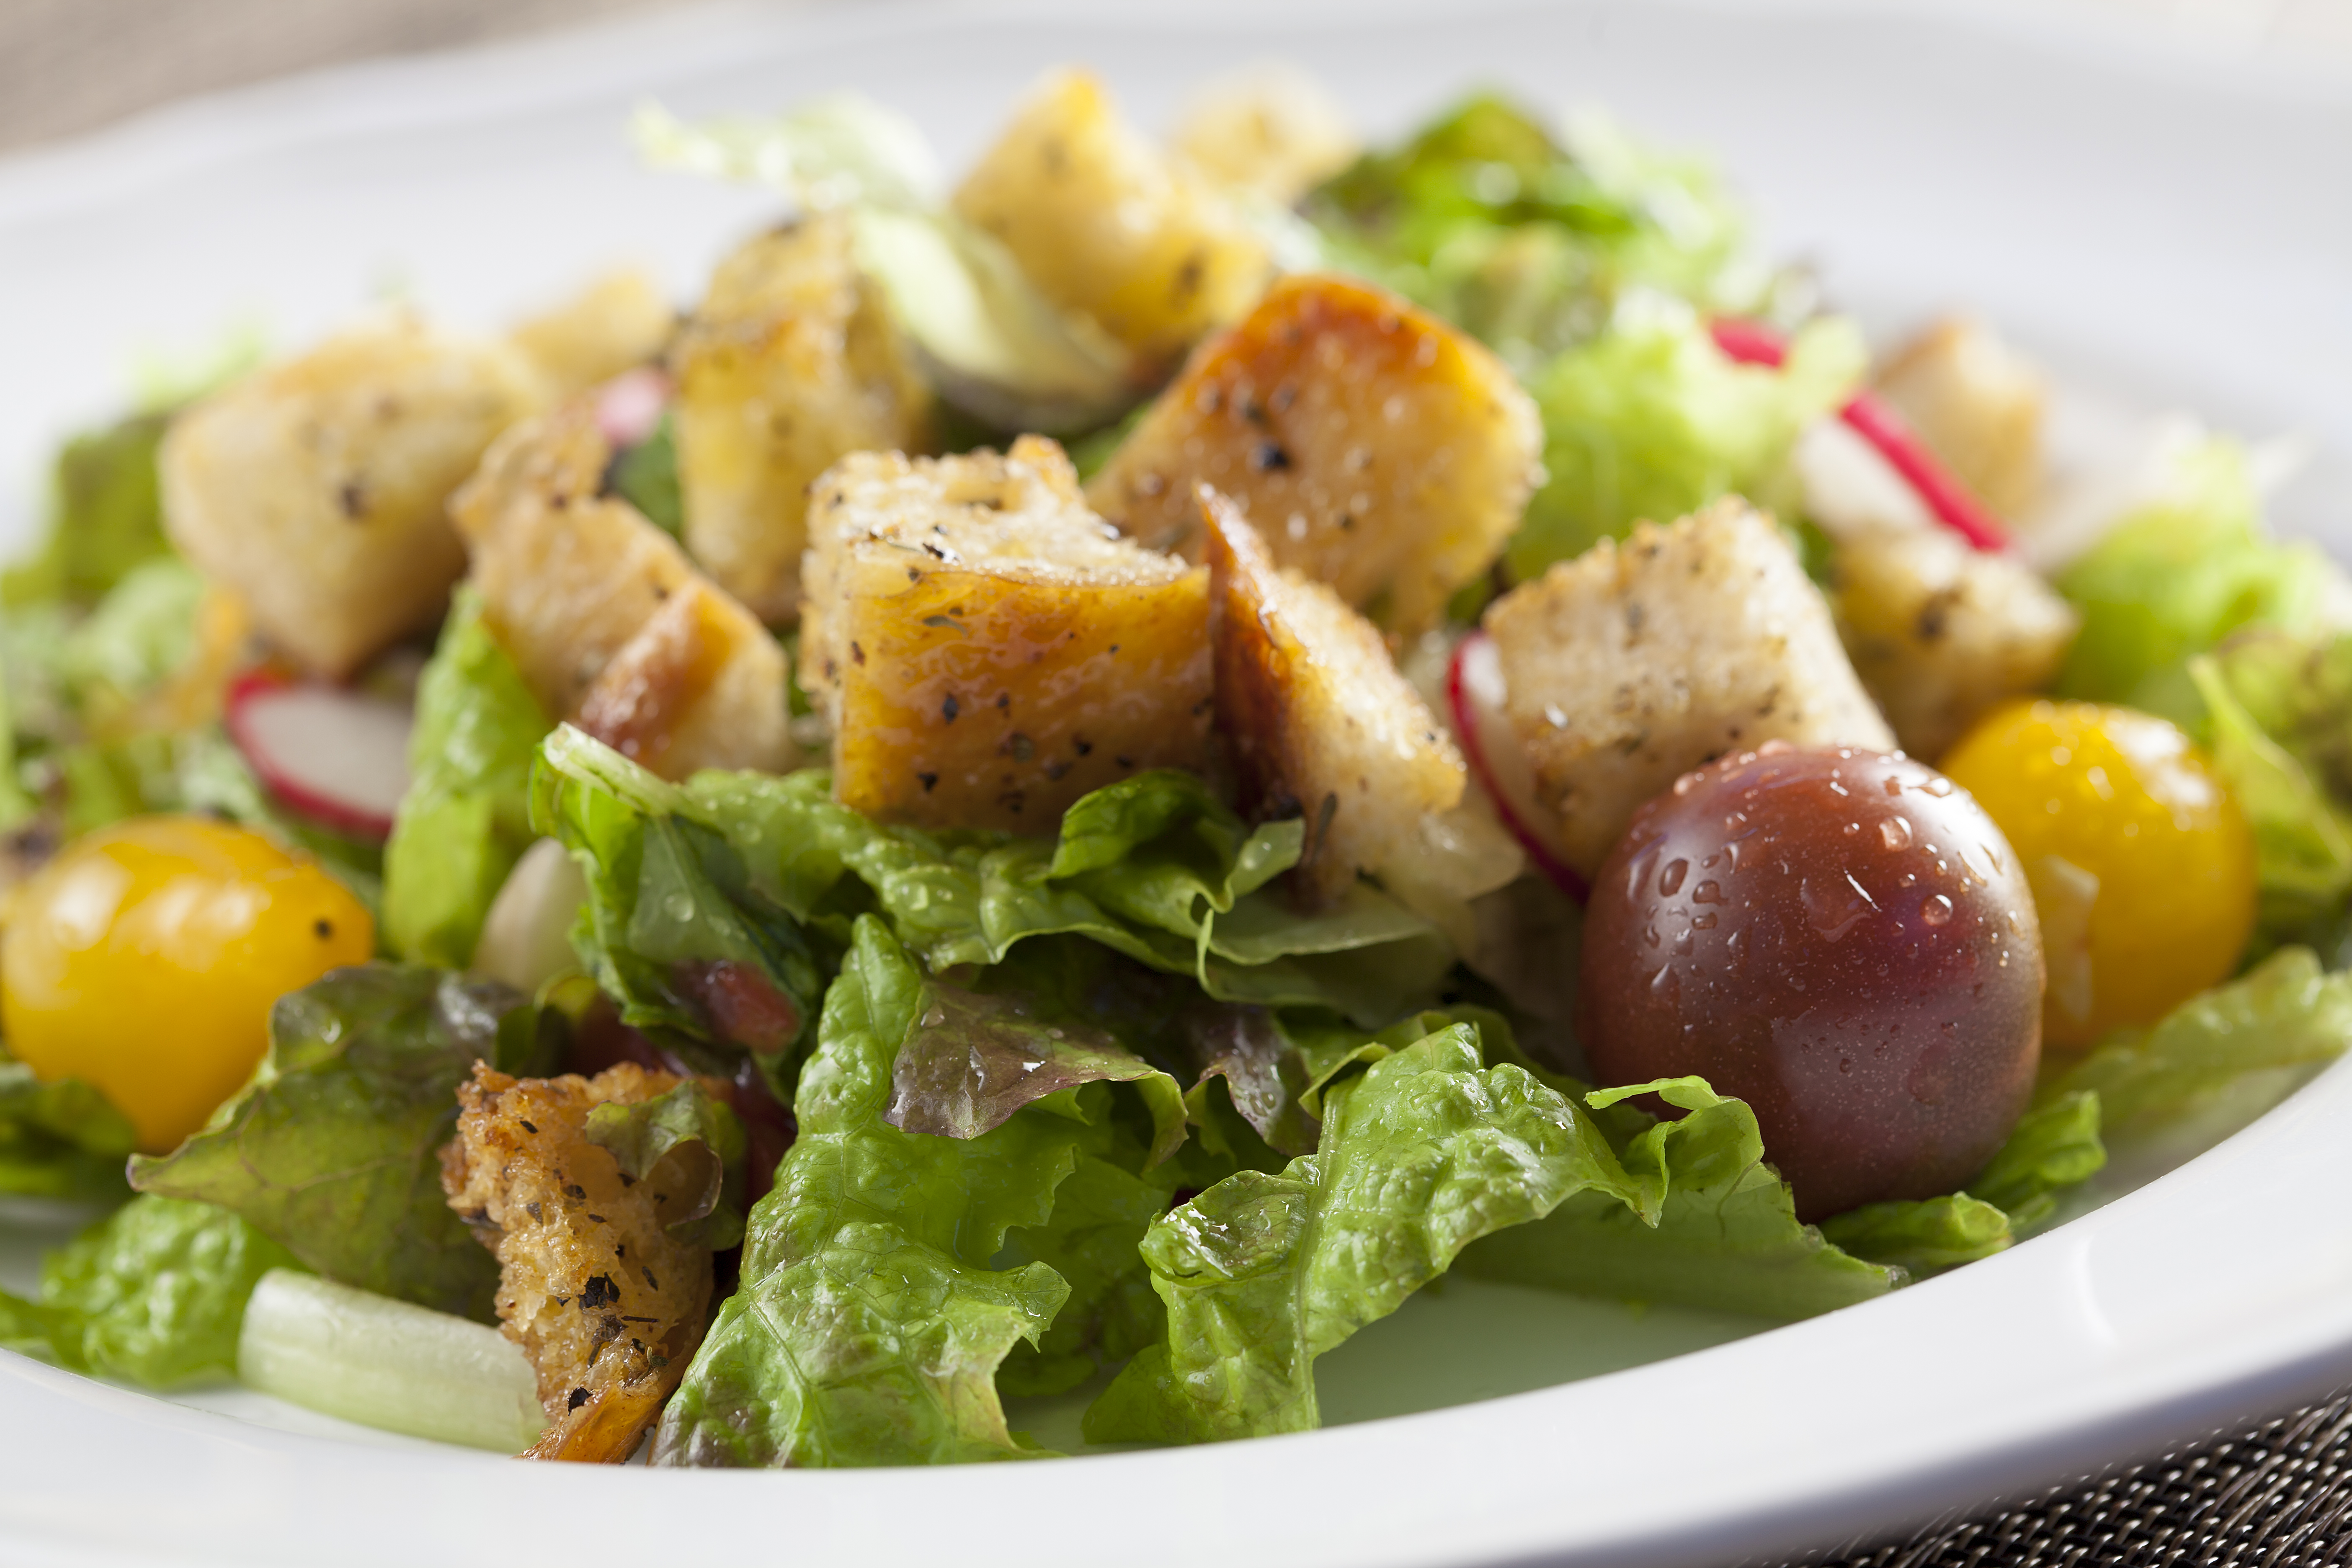 Croutons on Salad - Copy